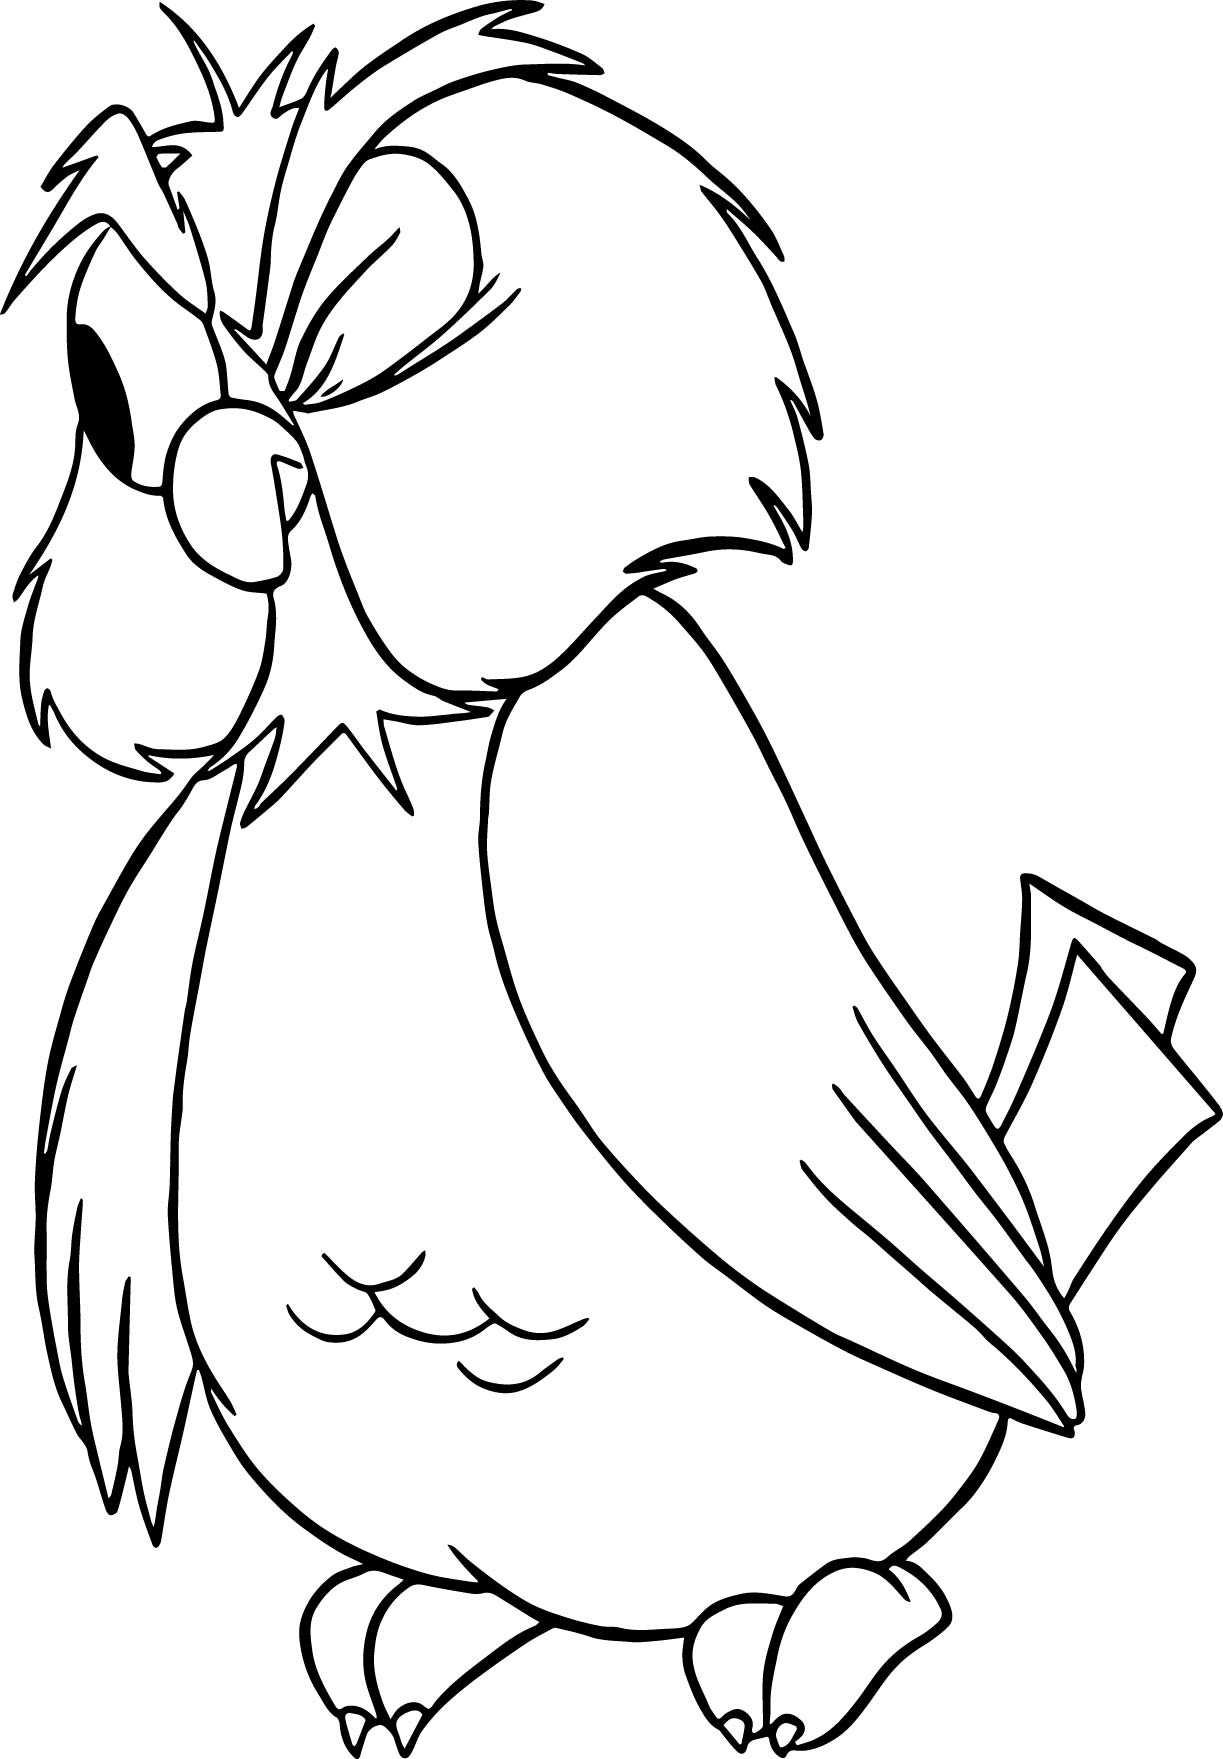 archimedes one eye owl coloring pages